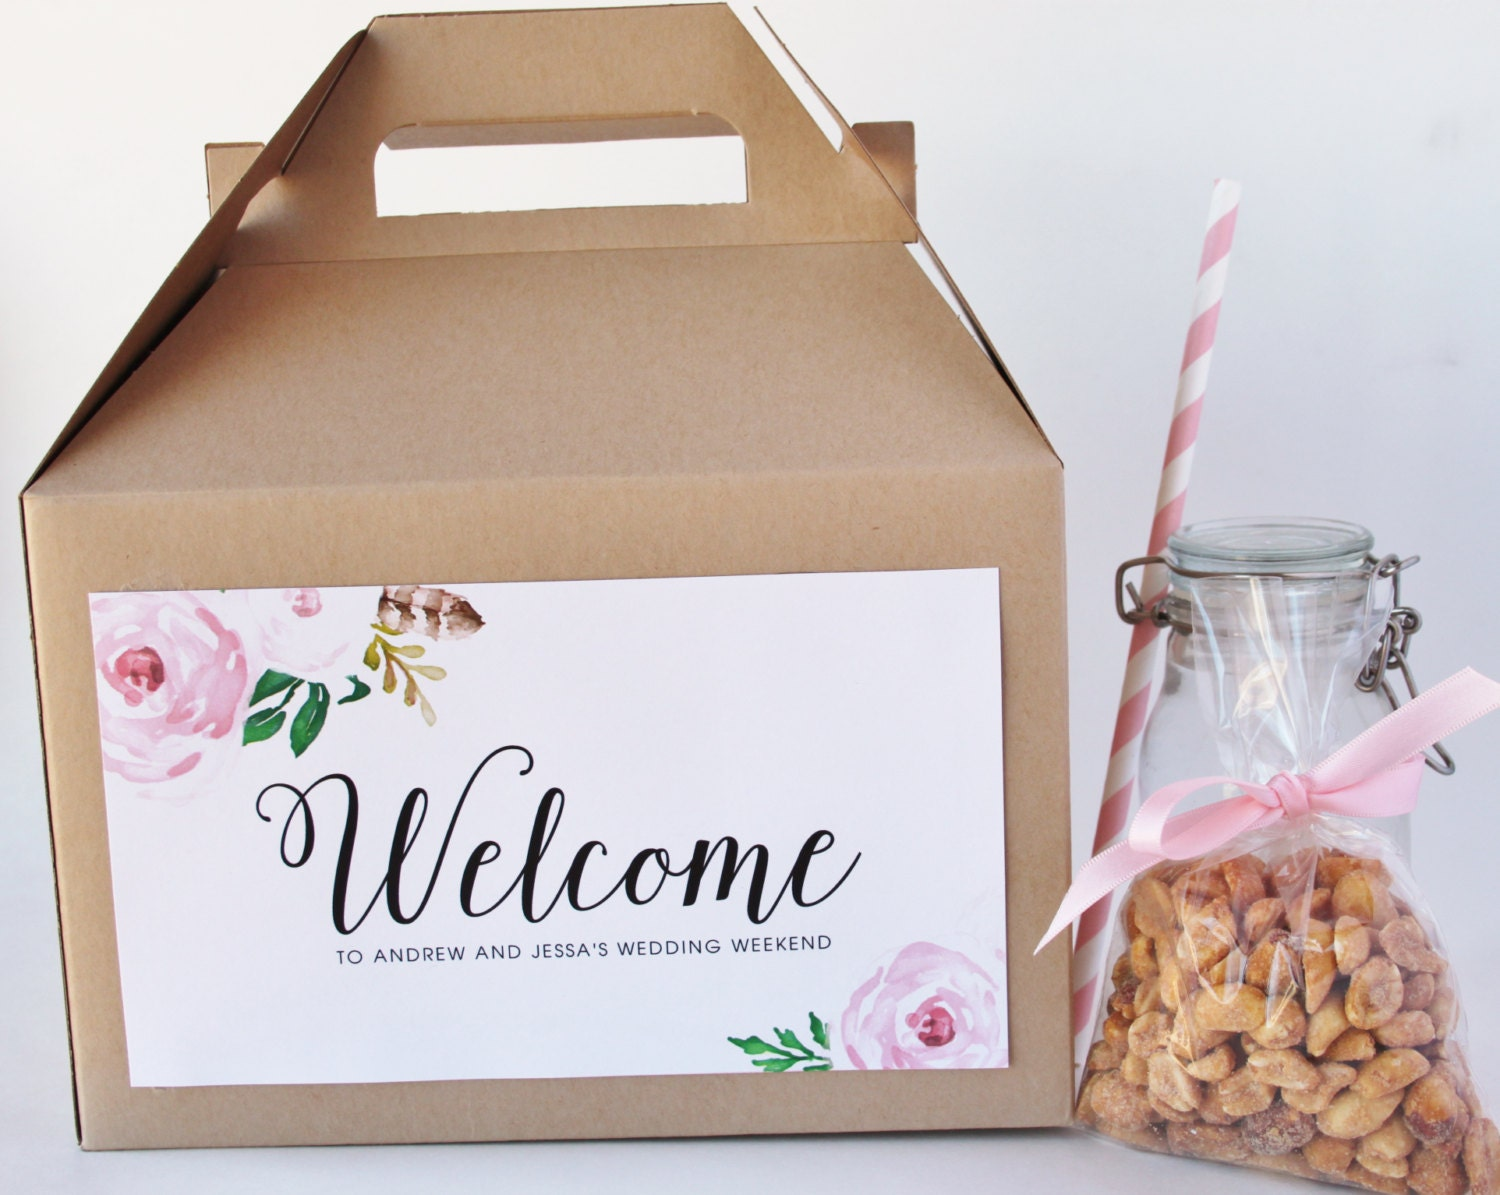 25 Out Of The Box Ideas For Your Destination Wedding: Set 10 Hotel Welcome Box Kraft Gable Box With Custom Labels